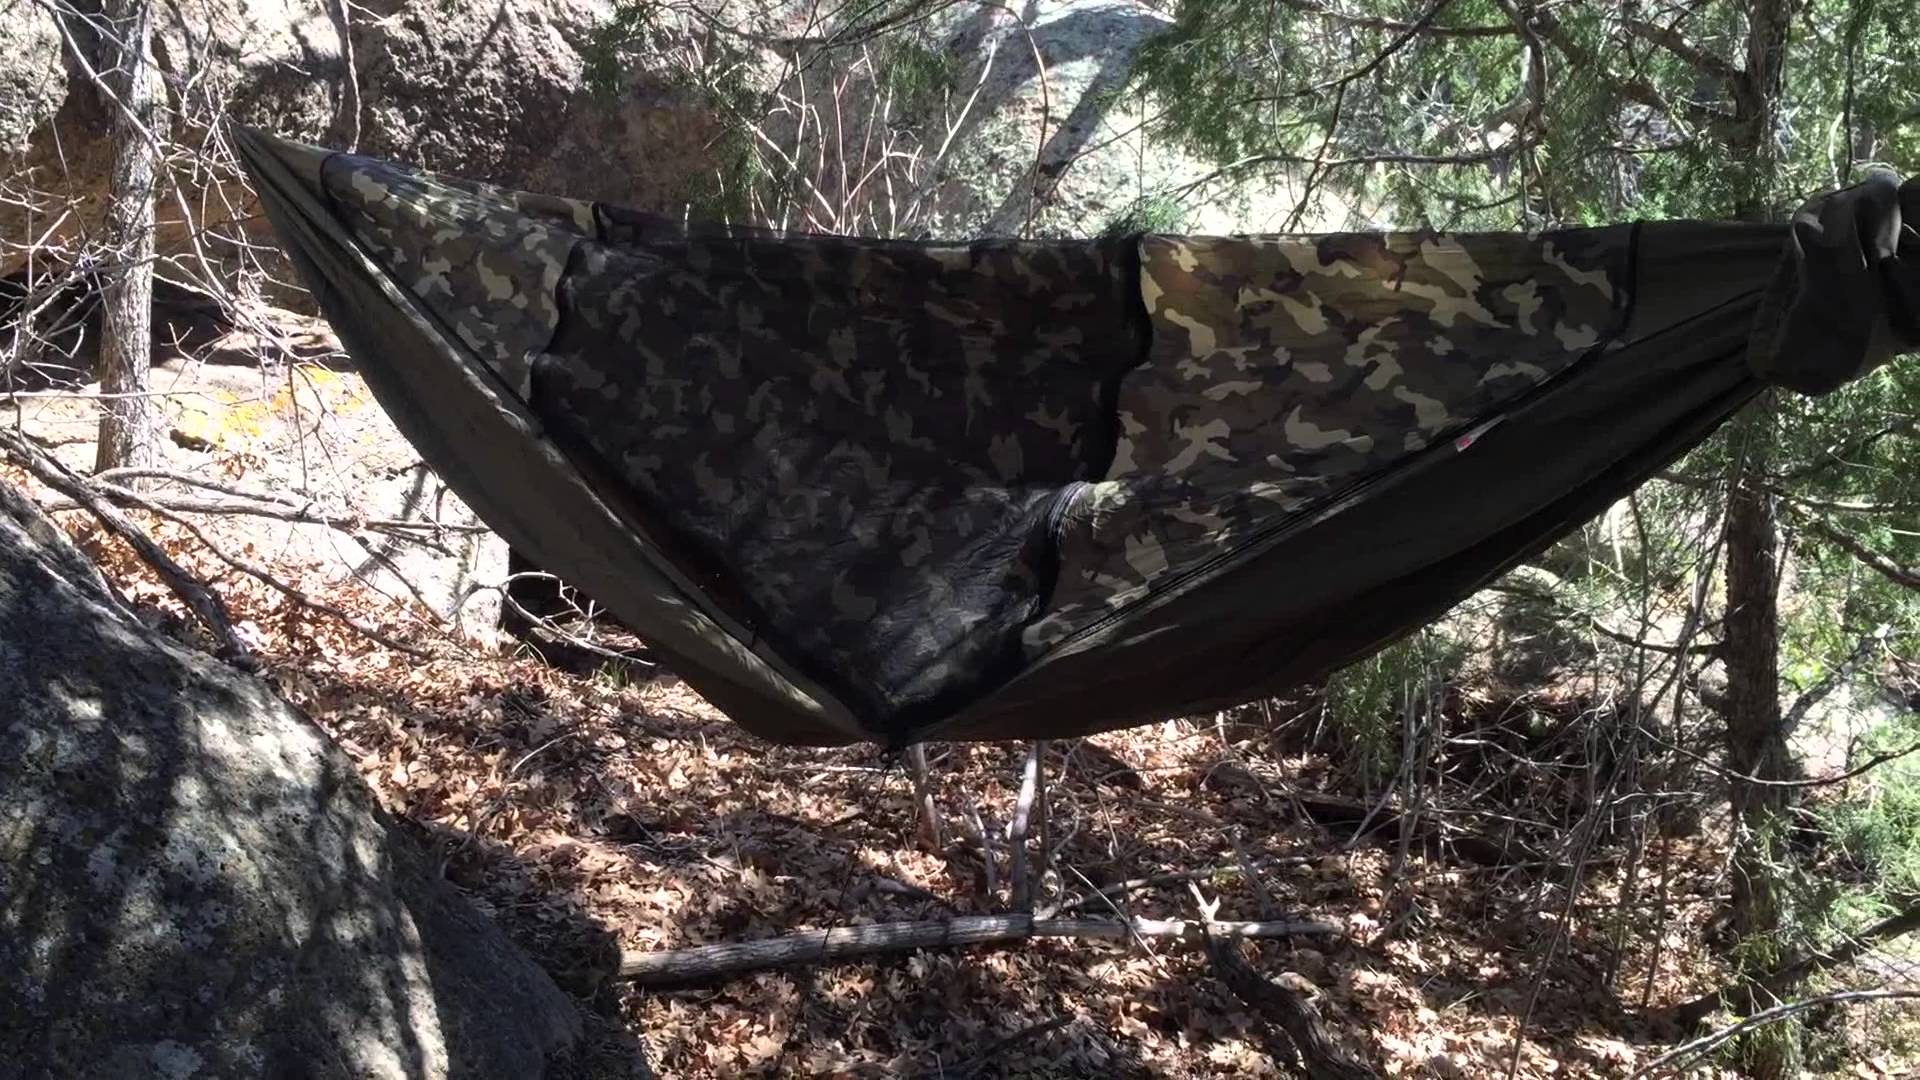 hammeck envy s hammock review   the ultimate hang  rh   theultimatehang